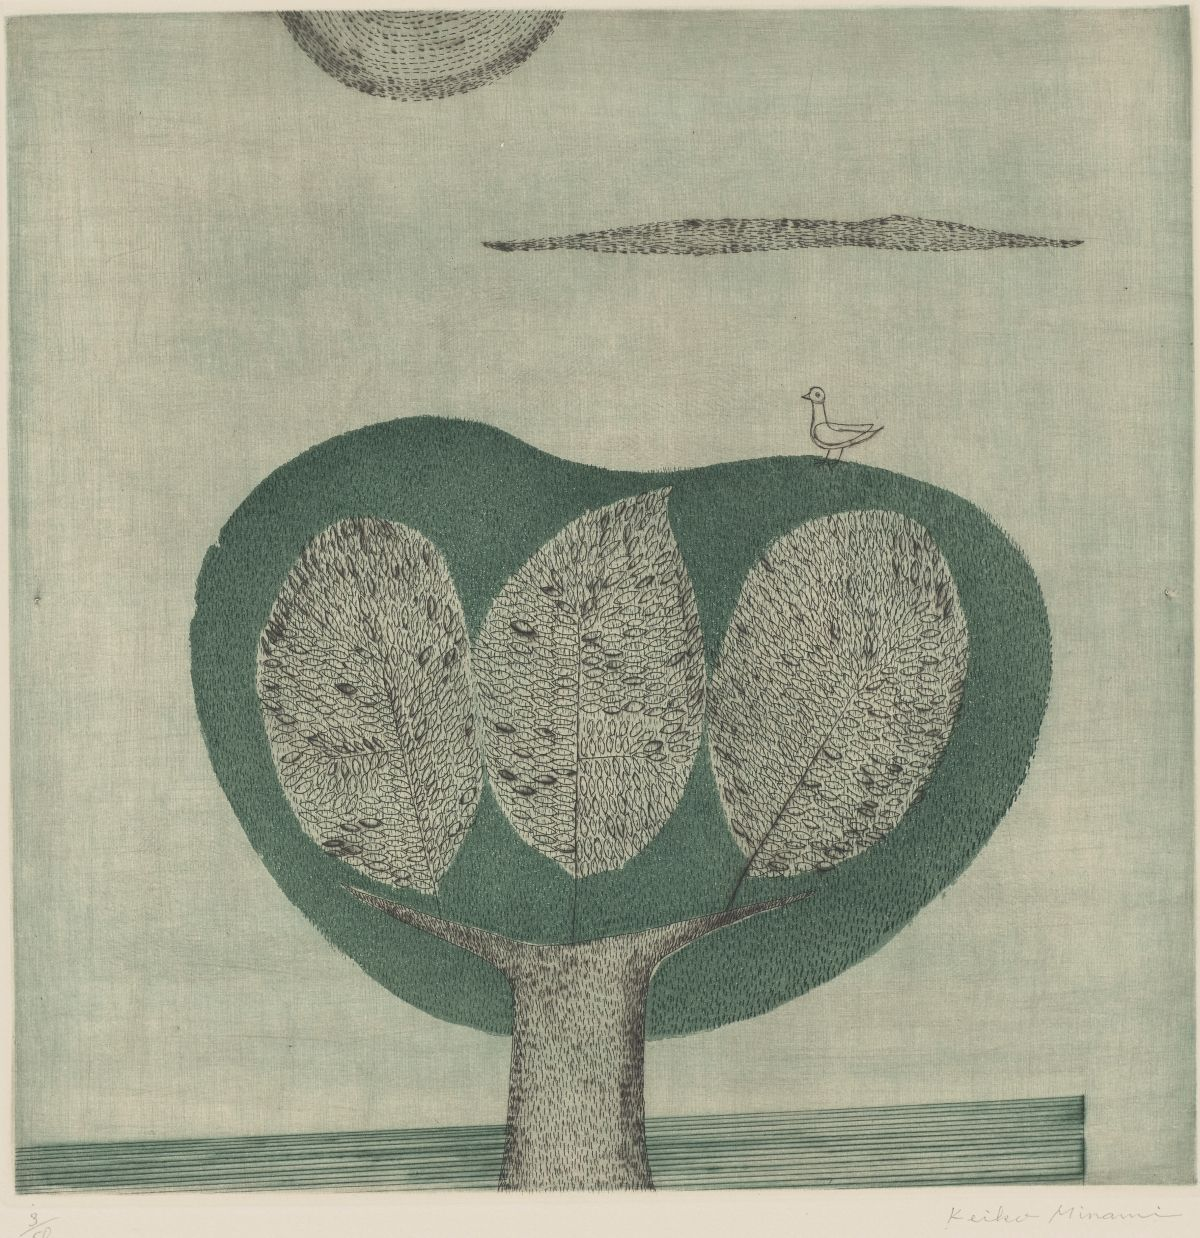 [Image description: Arbre (Tree), Minami Keiko, 11 7/16 x 11 7/16 inches, color etching and aquatint on paper. A square print depicting a highly stylized landscape featuring a large tree, a cloud, and a partial sun. The large tree begins at center bottom, its thick trunk rising and splitting into a wide V shape. The black bark is depicted as short vertical dashes grouped and layered at the trunk's sides to convey depth. In the space left by the V-shaped branches are three oversized leaves placed side by side. The one in the middle has a pointed top while the other two have rounded tops. They are larger than the tree's trunk and are composed of a multitude of smaller etched leaves over vertical dashes. Enveloping the large leaves and the upper branches is a muted green shape resembling a circle with the top edge depressed into itself. The circle contains more vertical black dashes. A line drawing of a bird is perched on the top right of the green shape. Above, a thin cloud composed of horizontal dashes appears. Just off center at upper left, a half circle resembling a partial sun is composed of concentric dashes. The background is a pale gray and resembles woven fabric.]